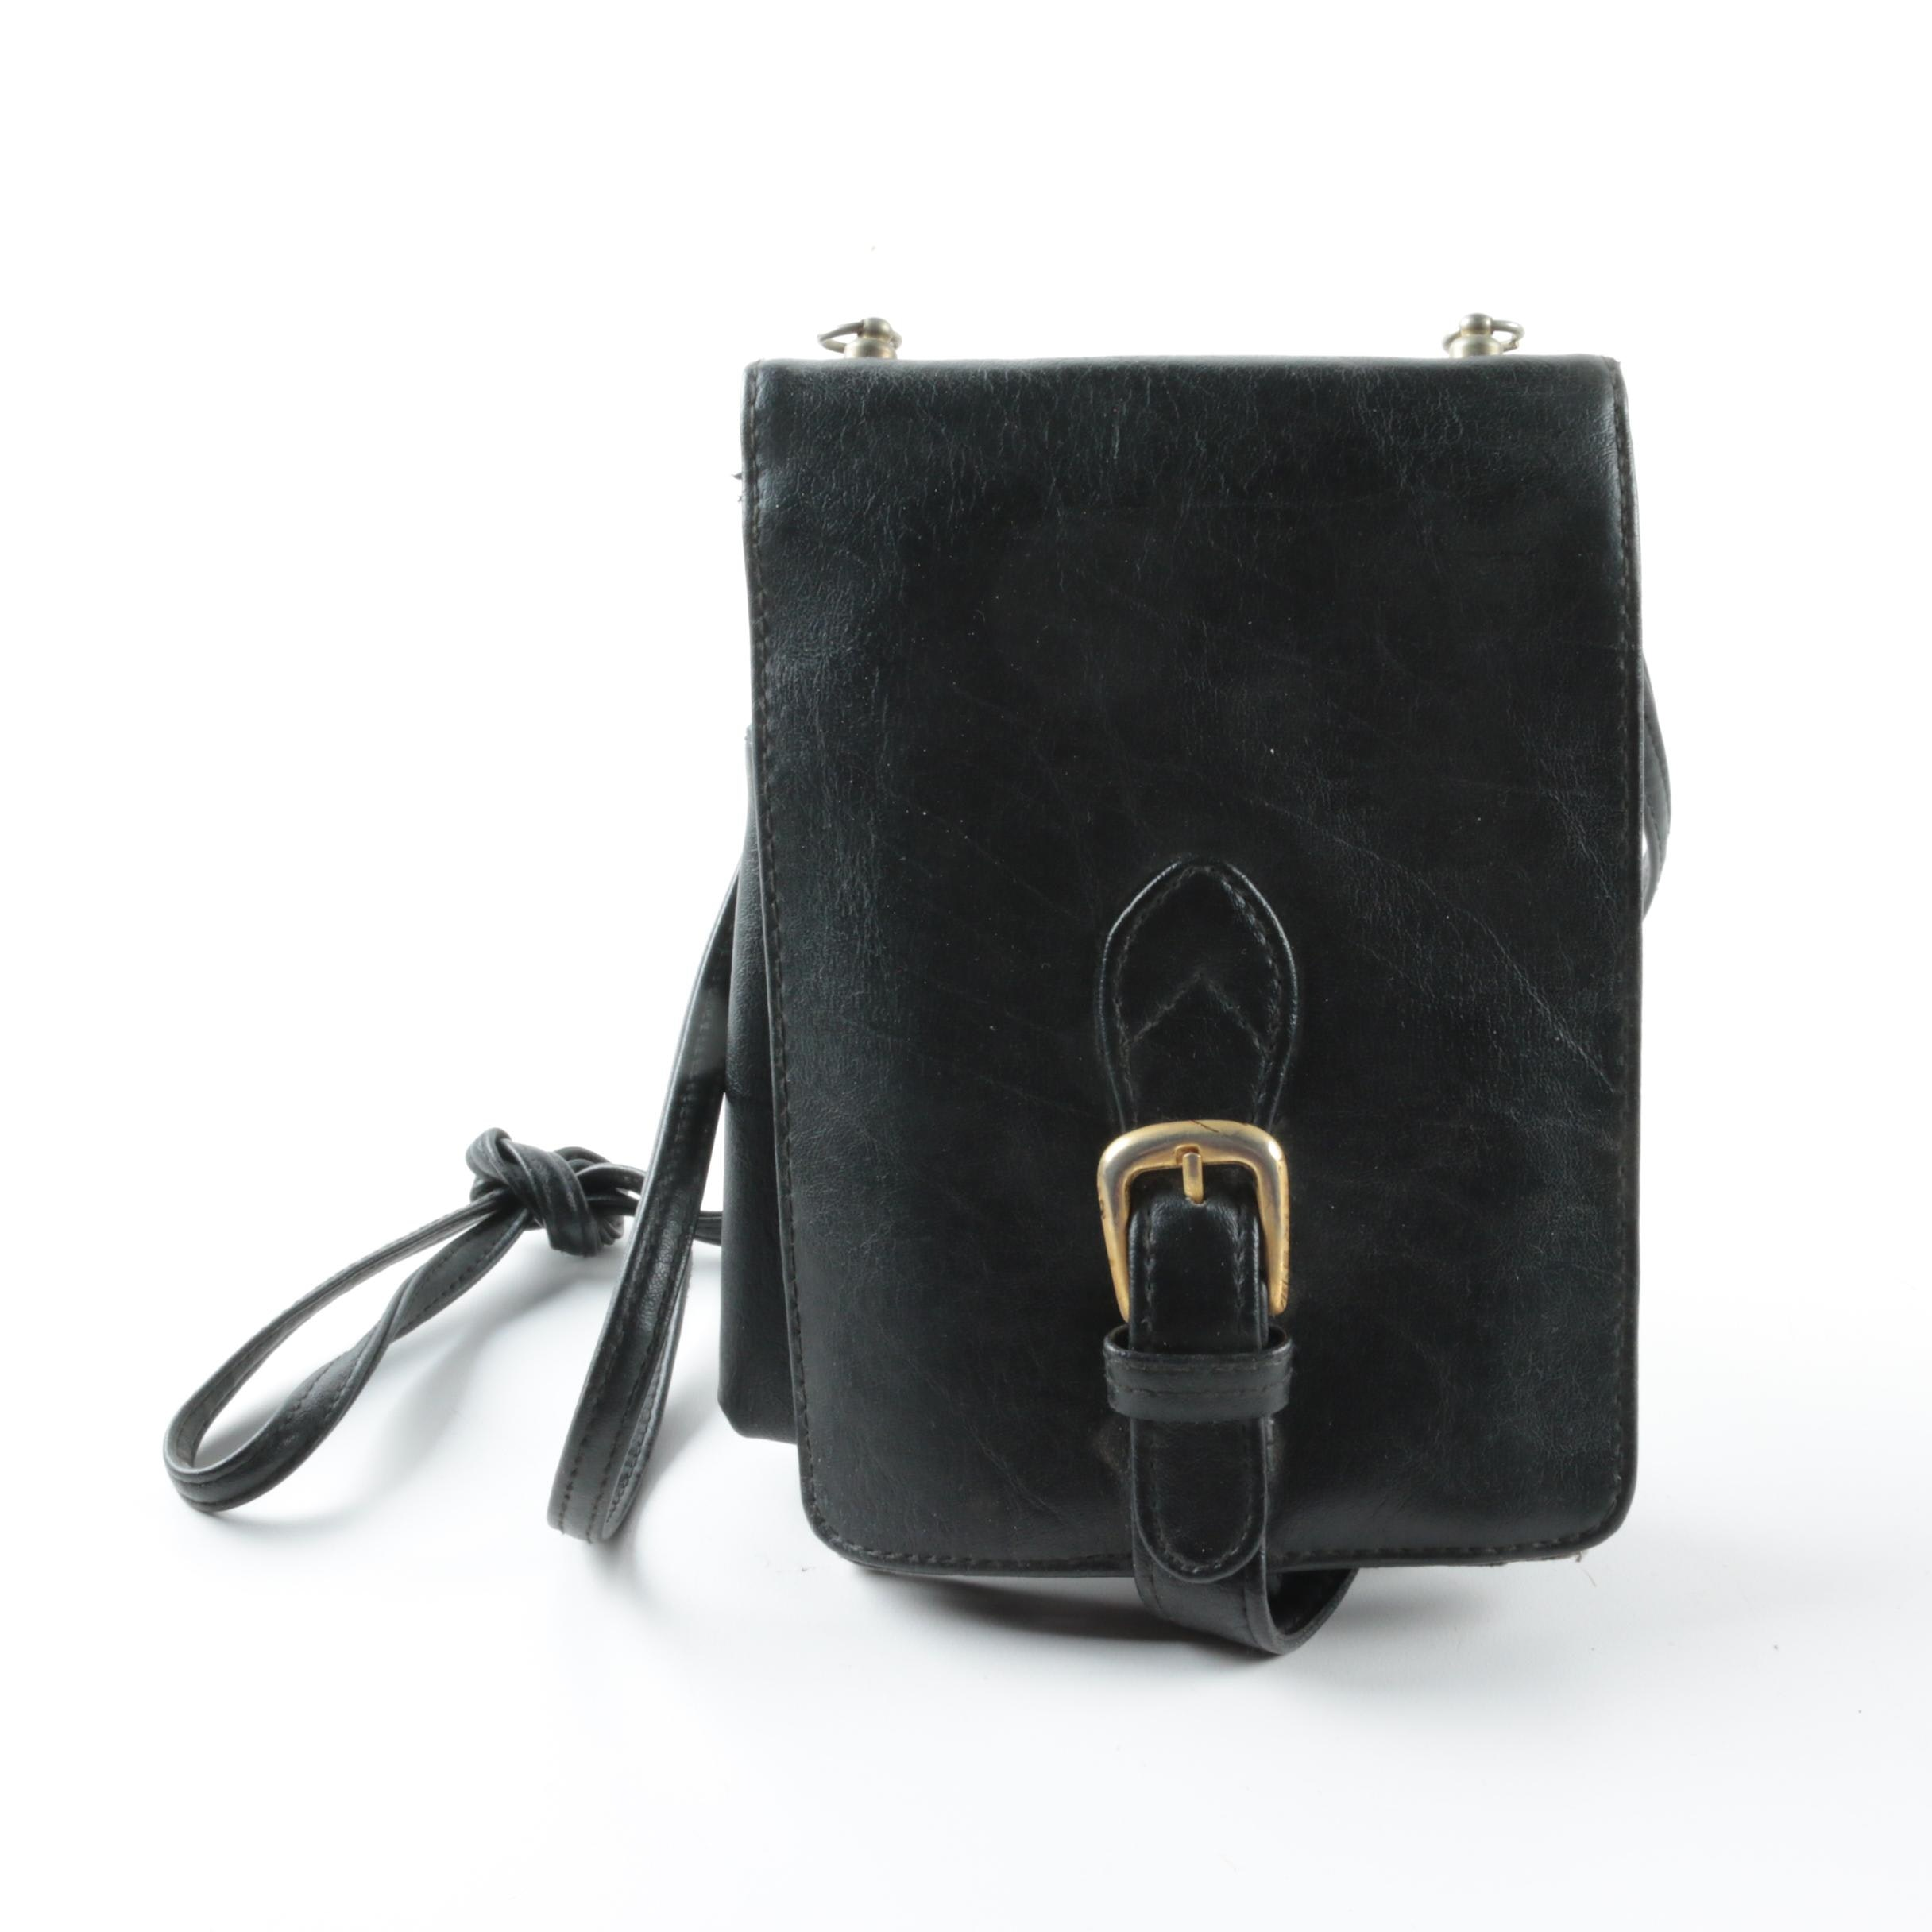 Rosetti Black Leather Bag